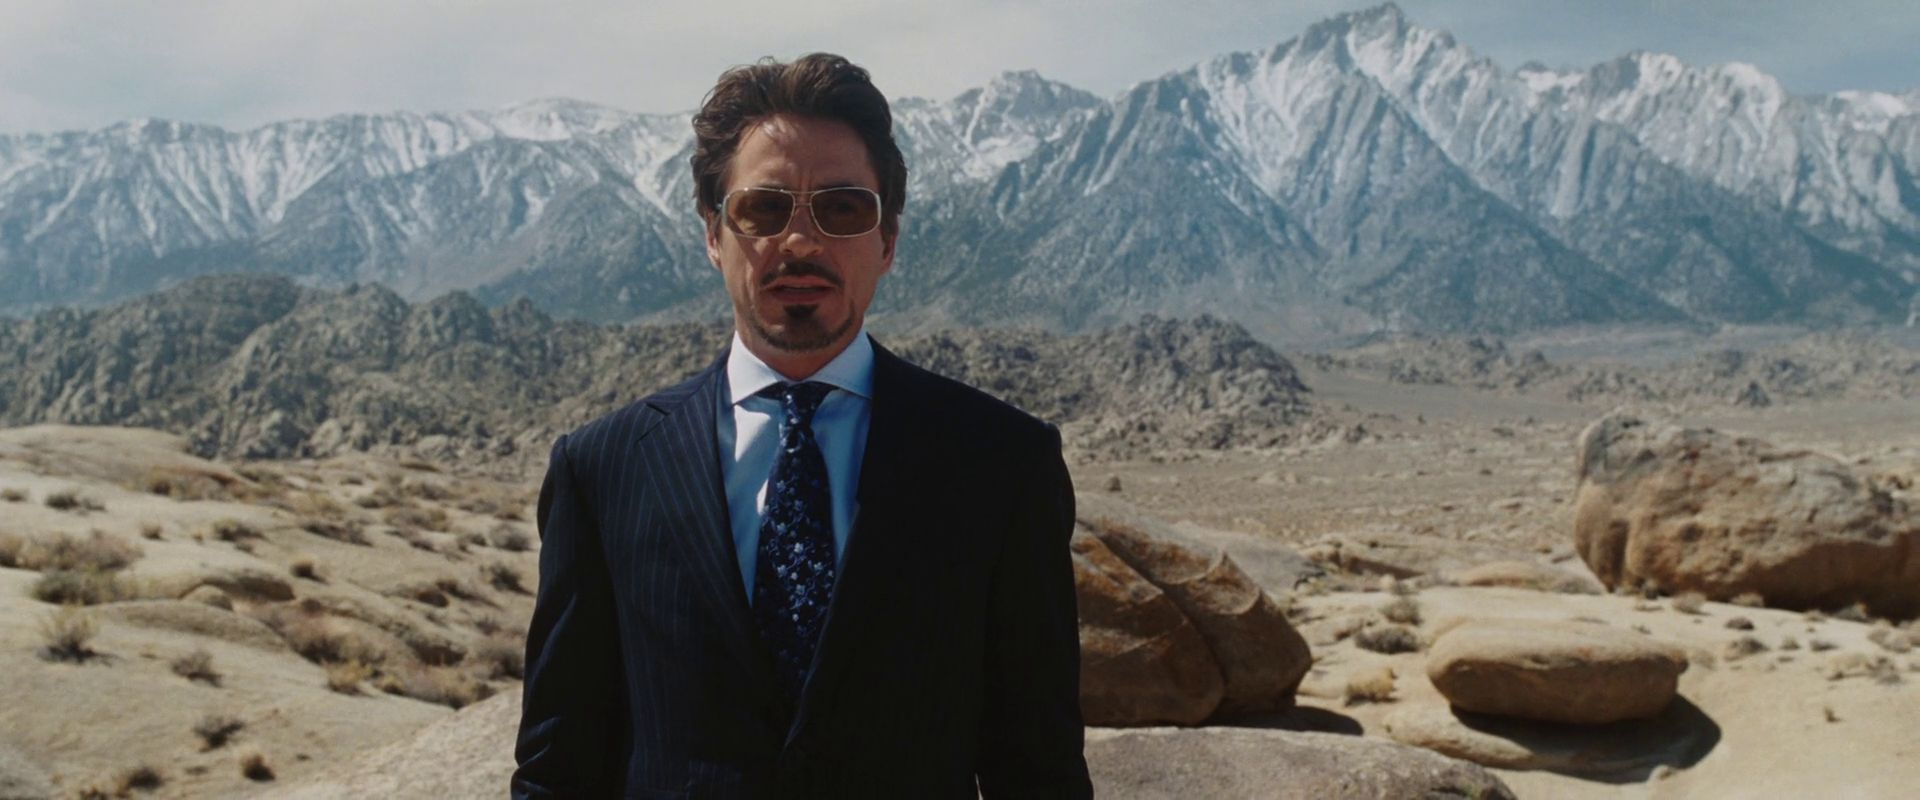 iron-man in Afghanistan